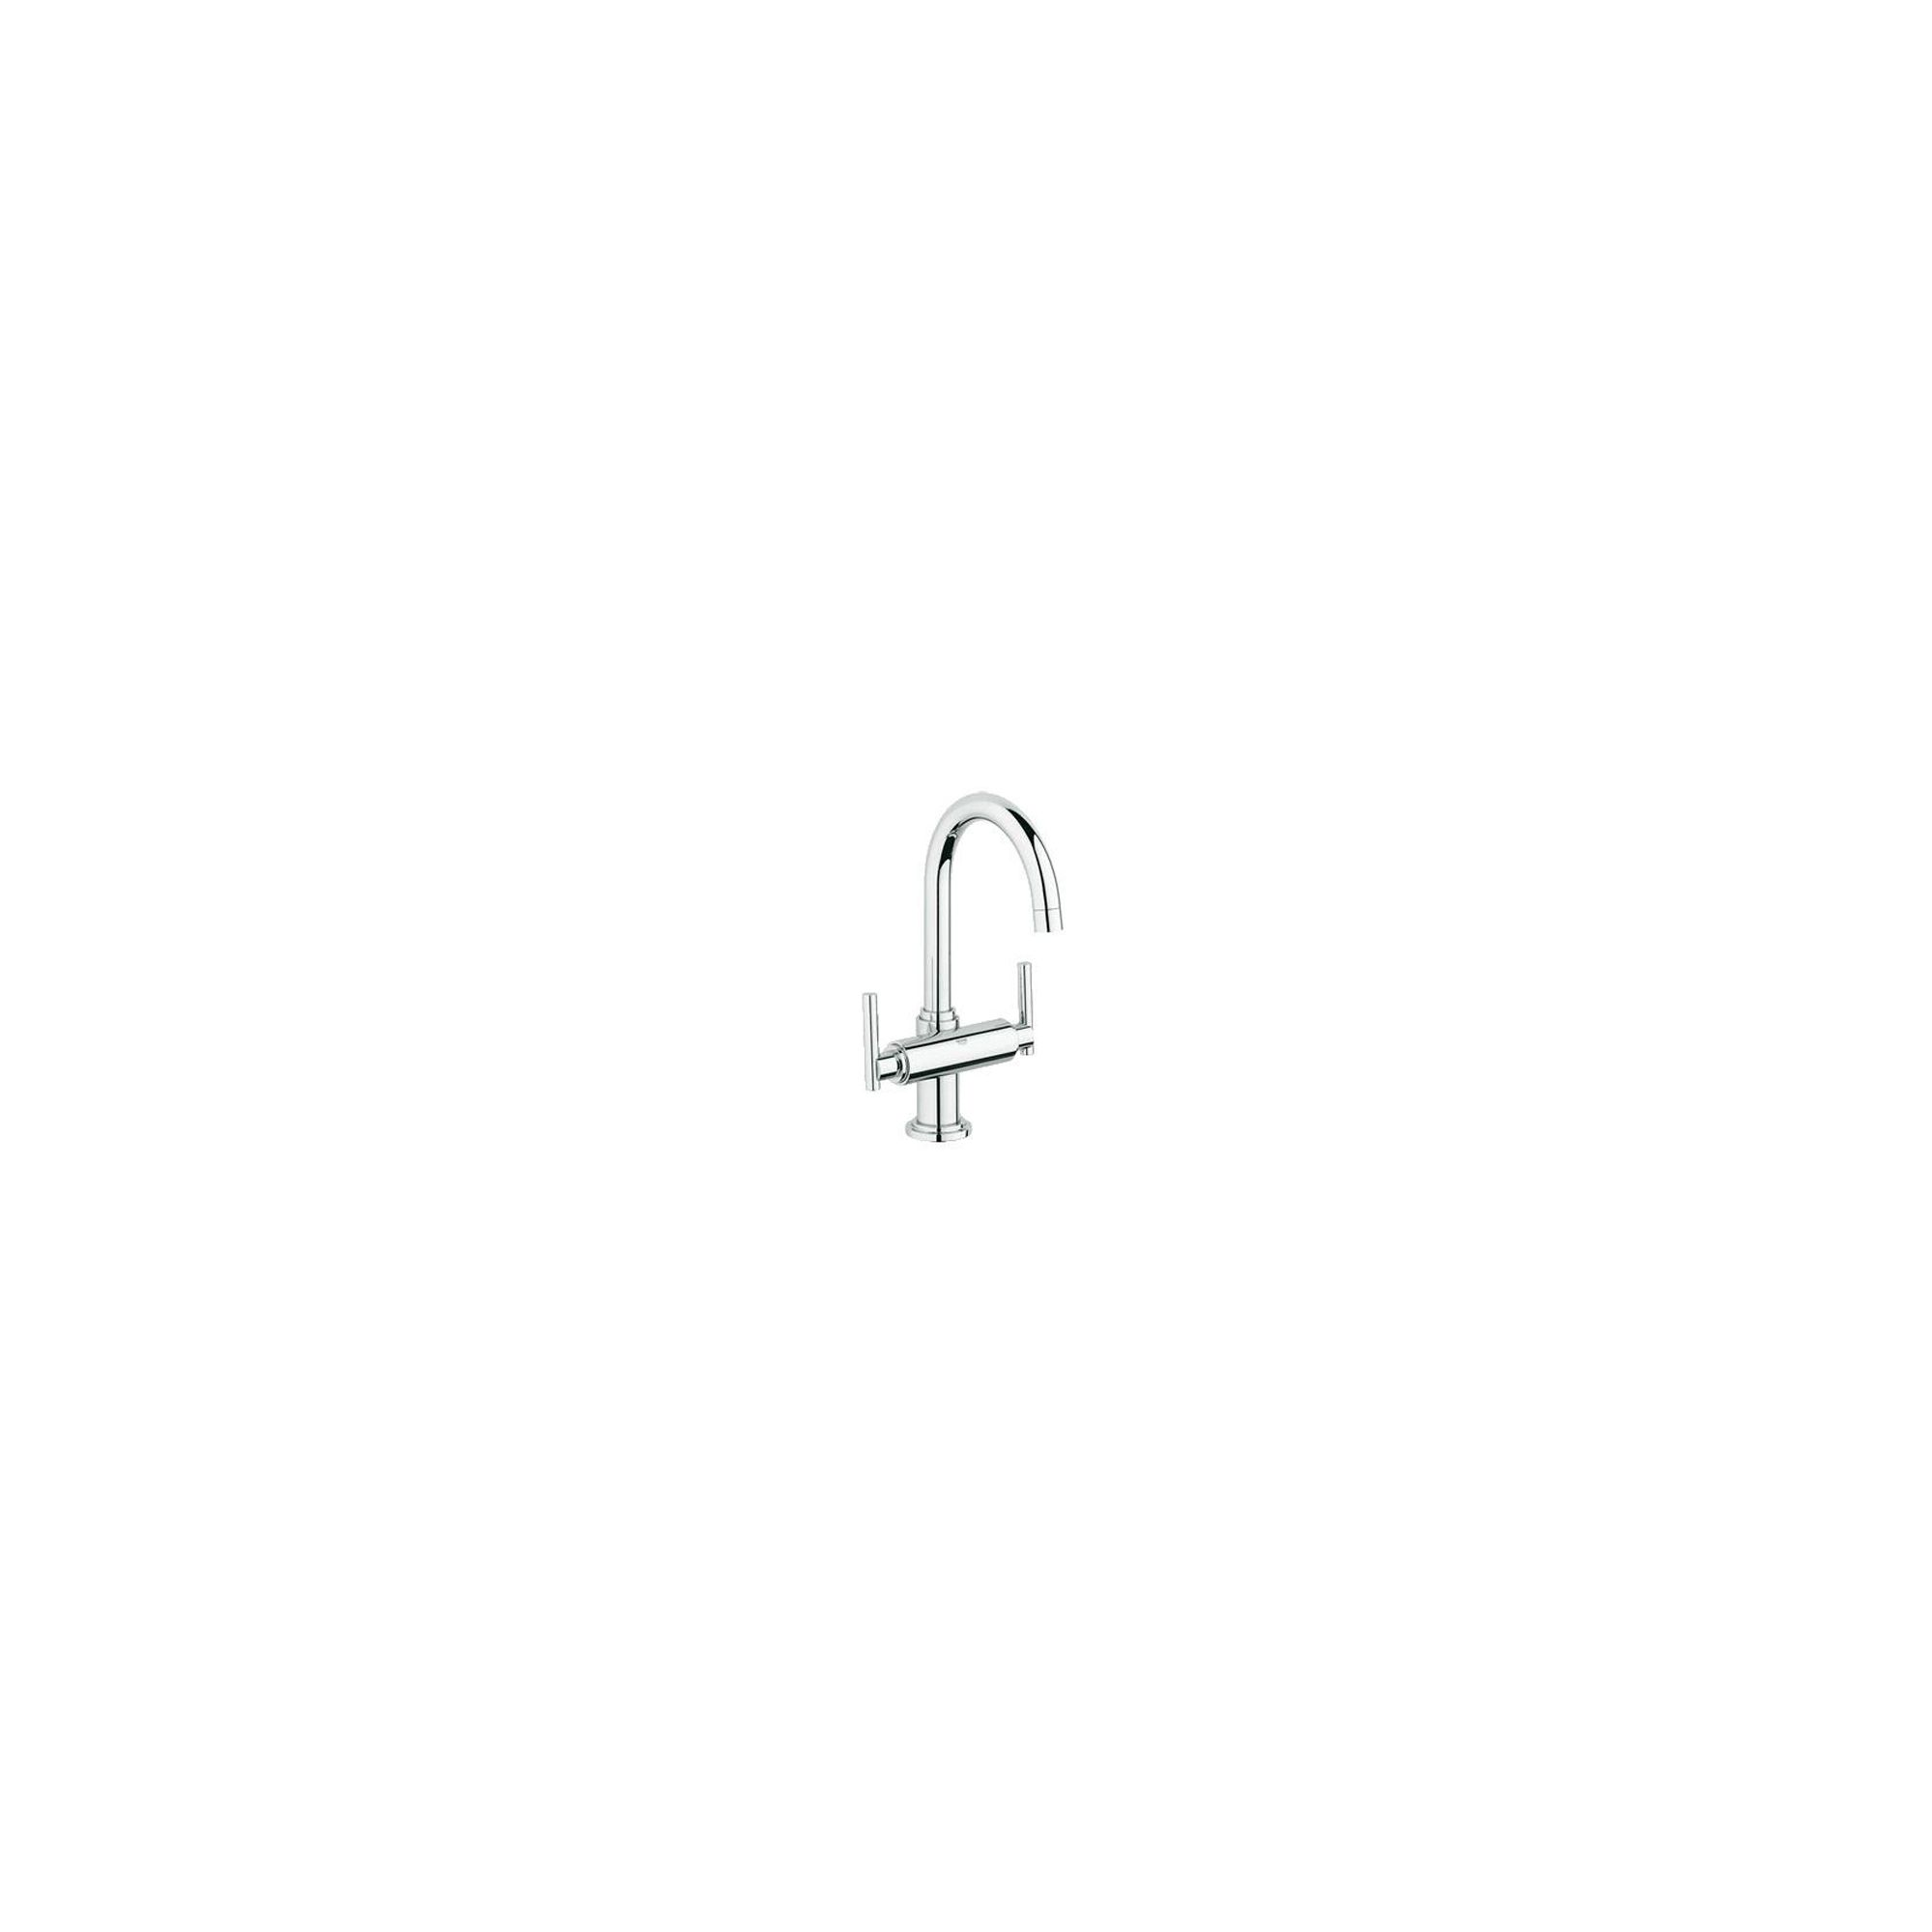 Grohe Atrio Jota Mono Basin Mixer Tap, Dual Handle, Chrome at Tesco Direct